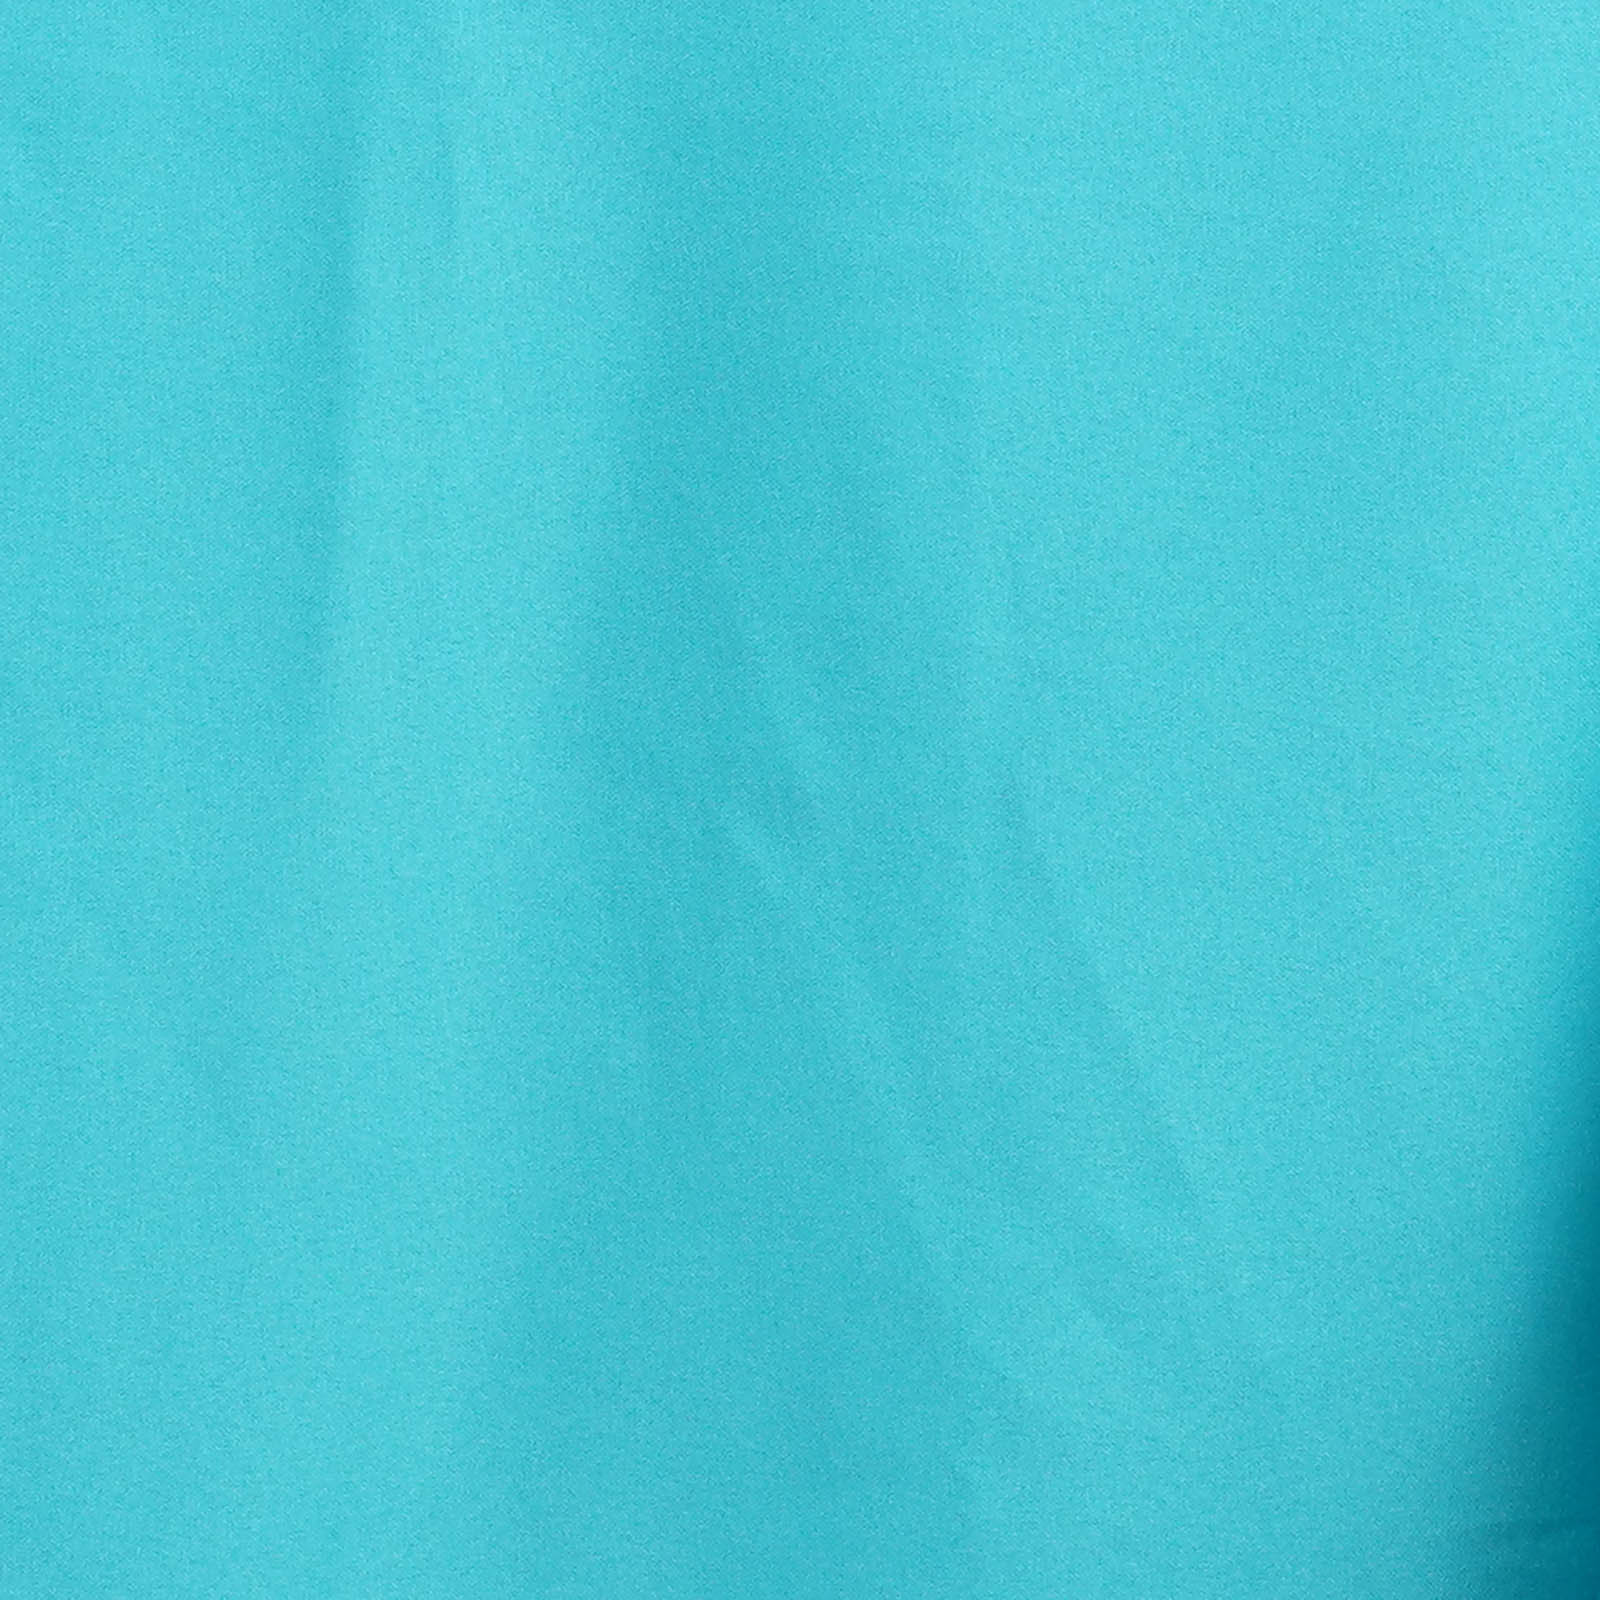 90x132-034-Polyester-Rectangle-Tablecloths-For-Wedding-Party-Banquet-Events thumbnail 44